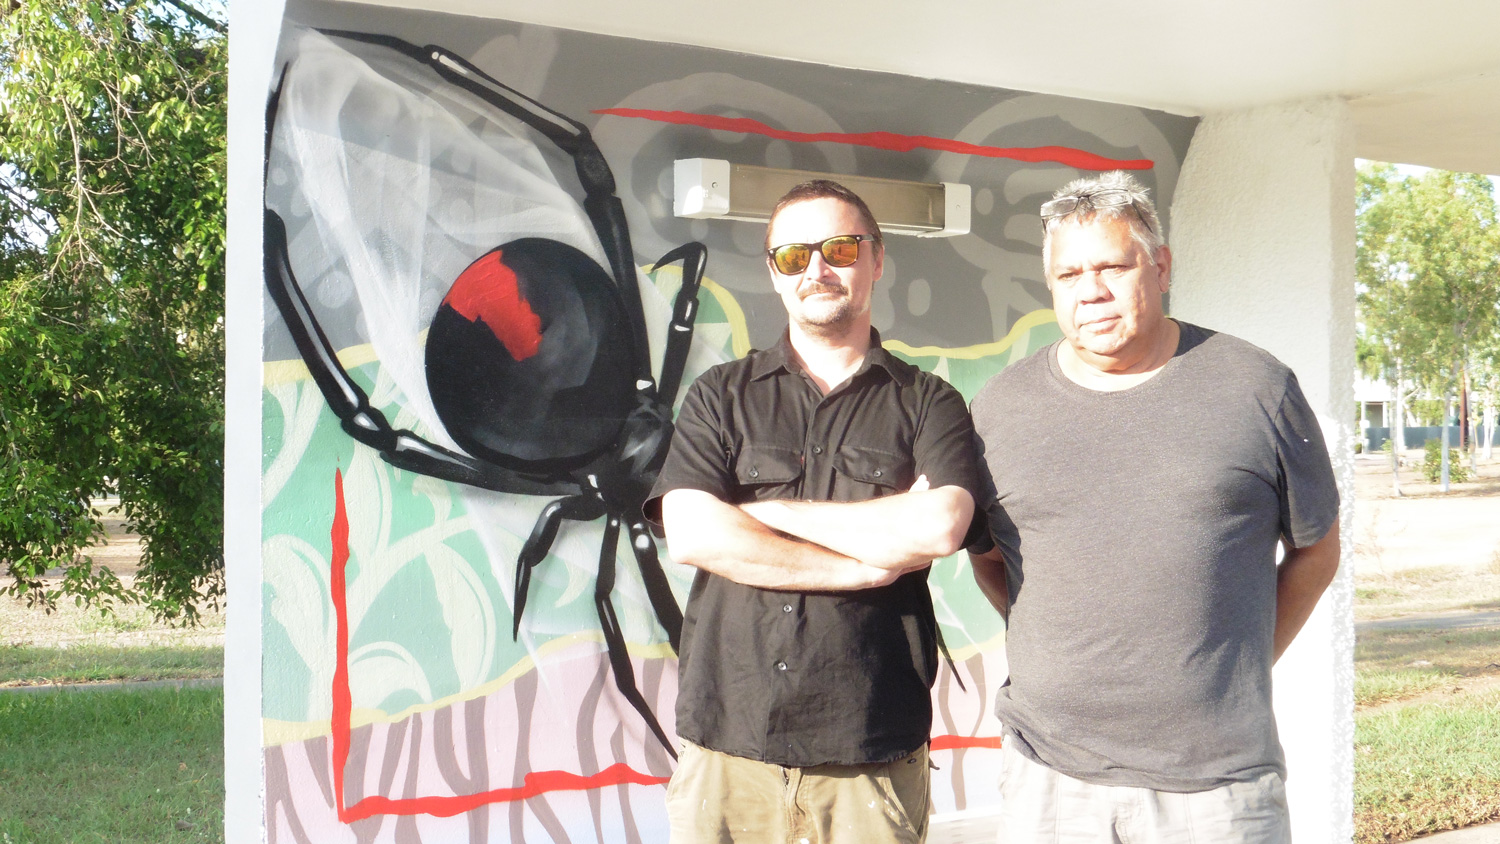 Bus shelters benefit from public art